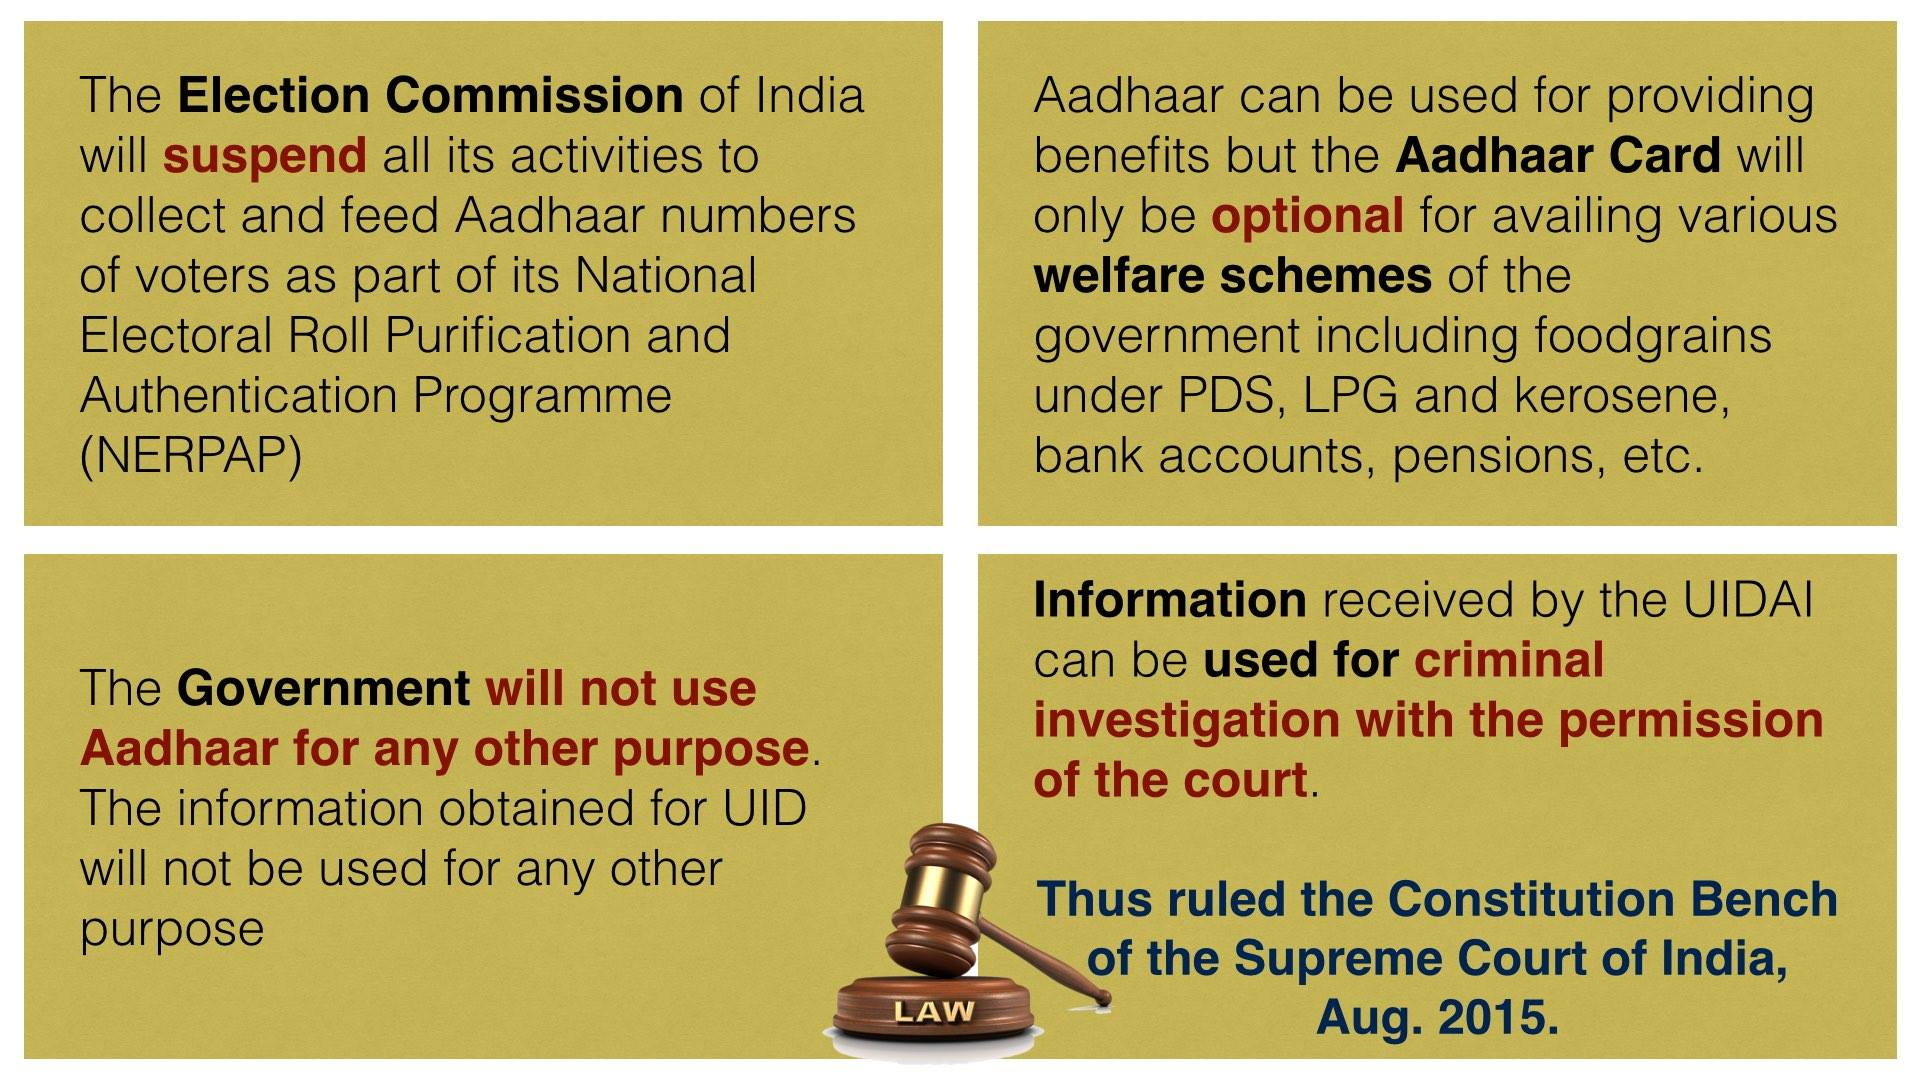 Aadhar is not manadatory 2